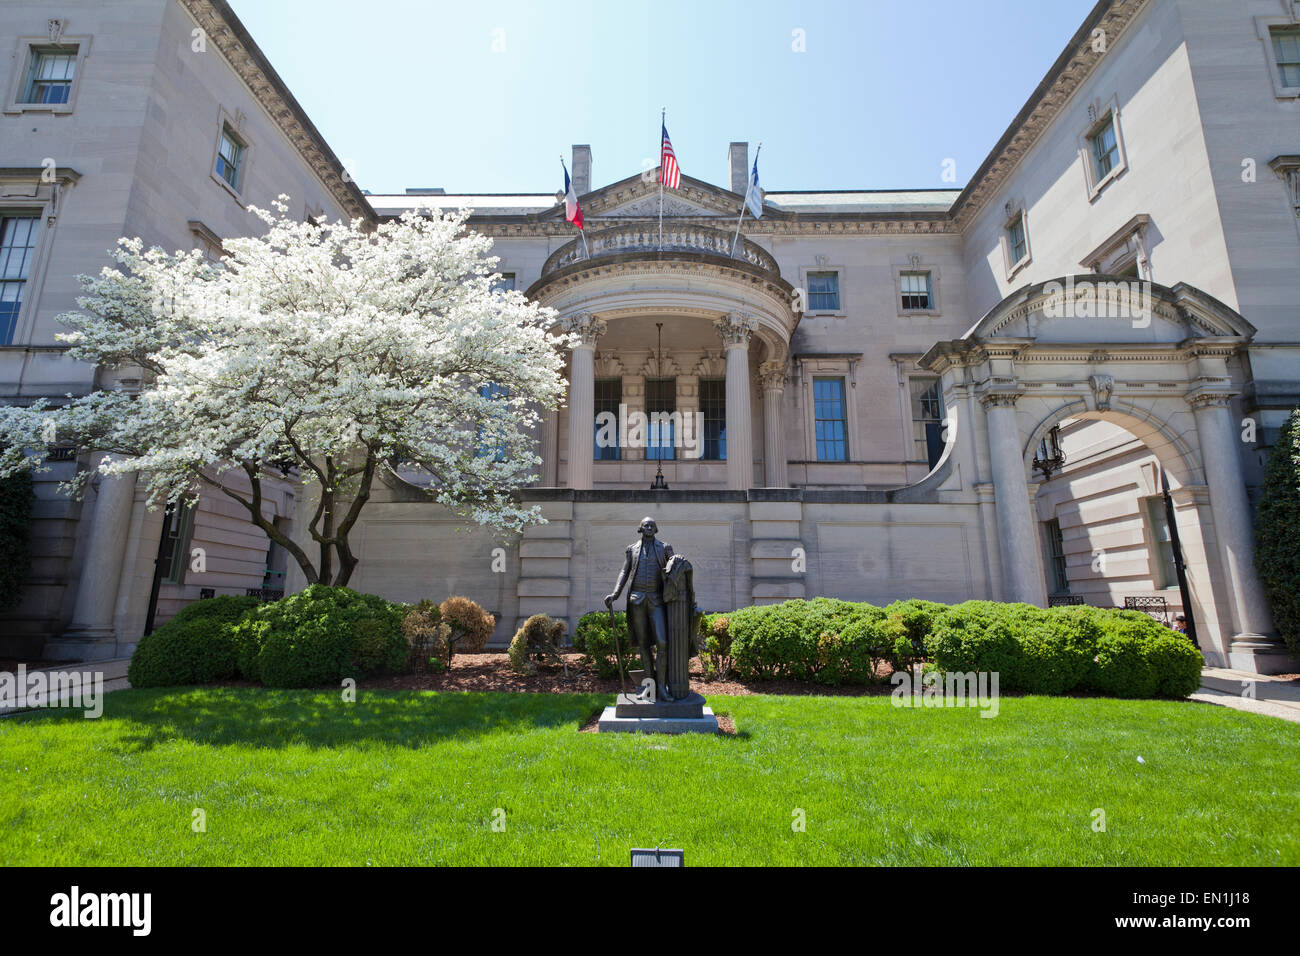 The Anderson House of The Society of the Cincinnati - Washington, DC USA - Stock Image